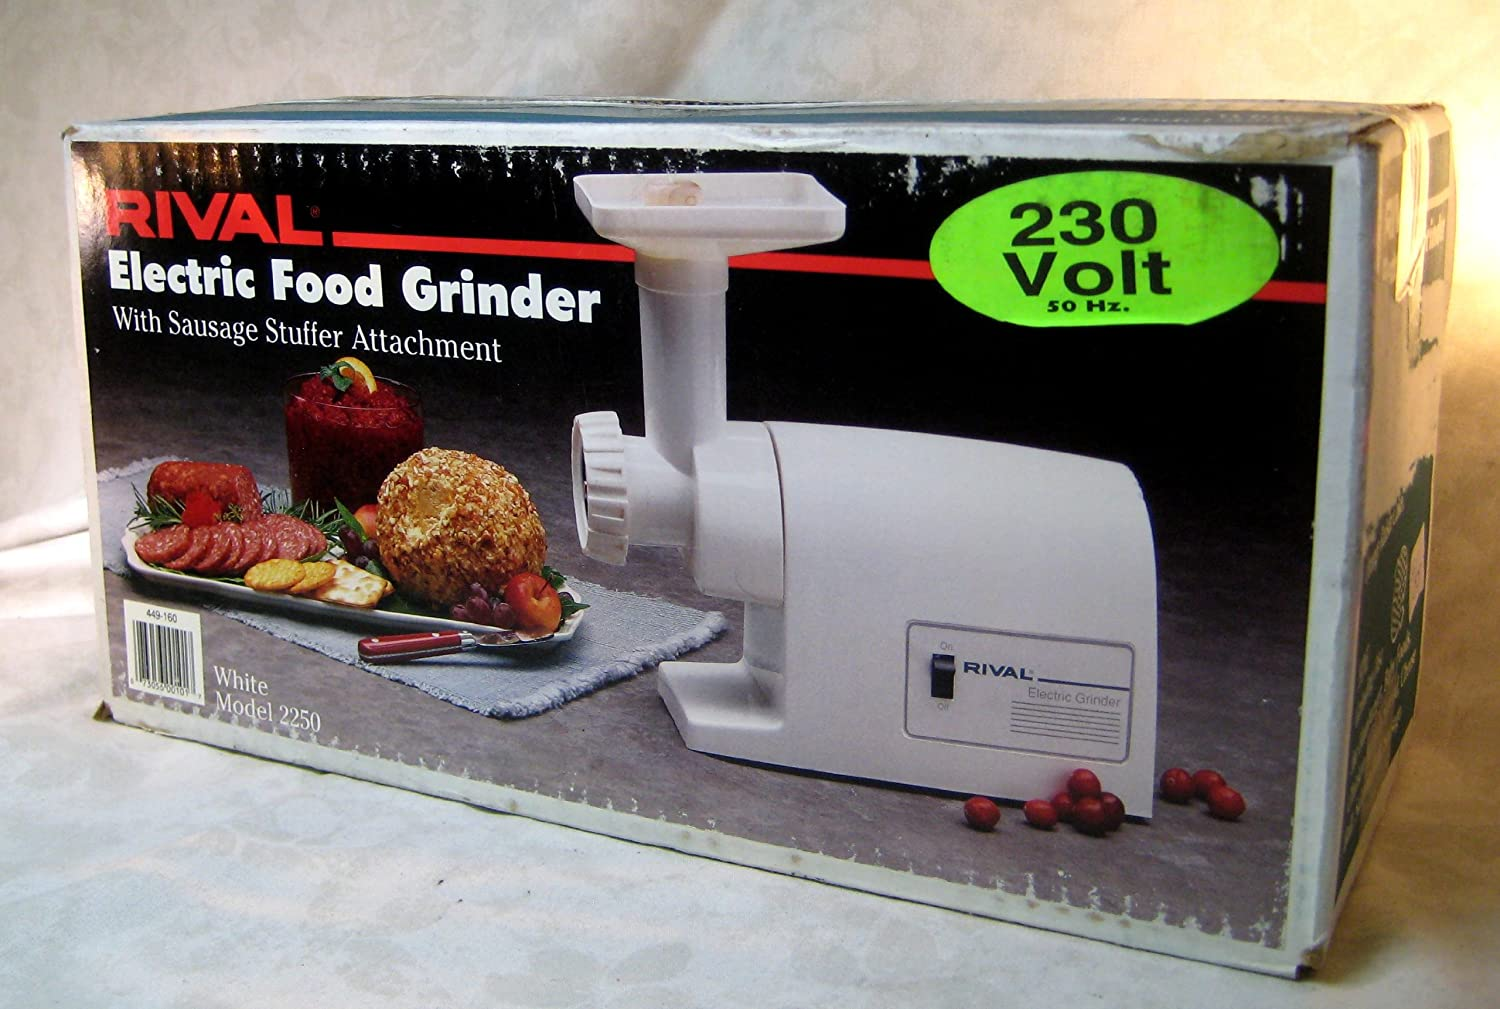 Rival Electric Food Grinder with Sausage Stuffer Attachment, 220-volt